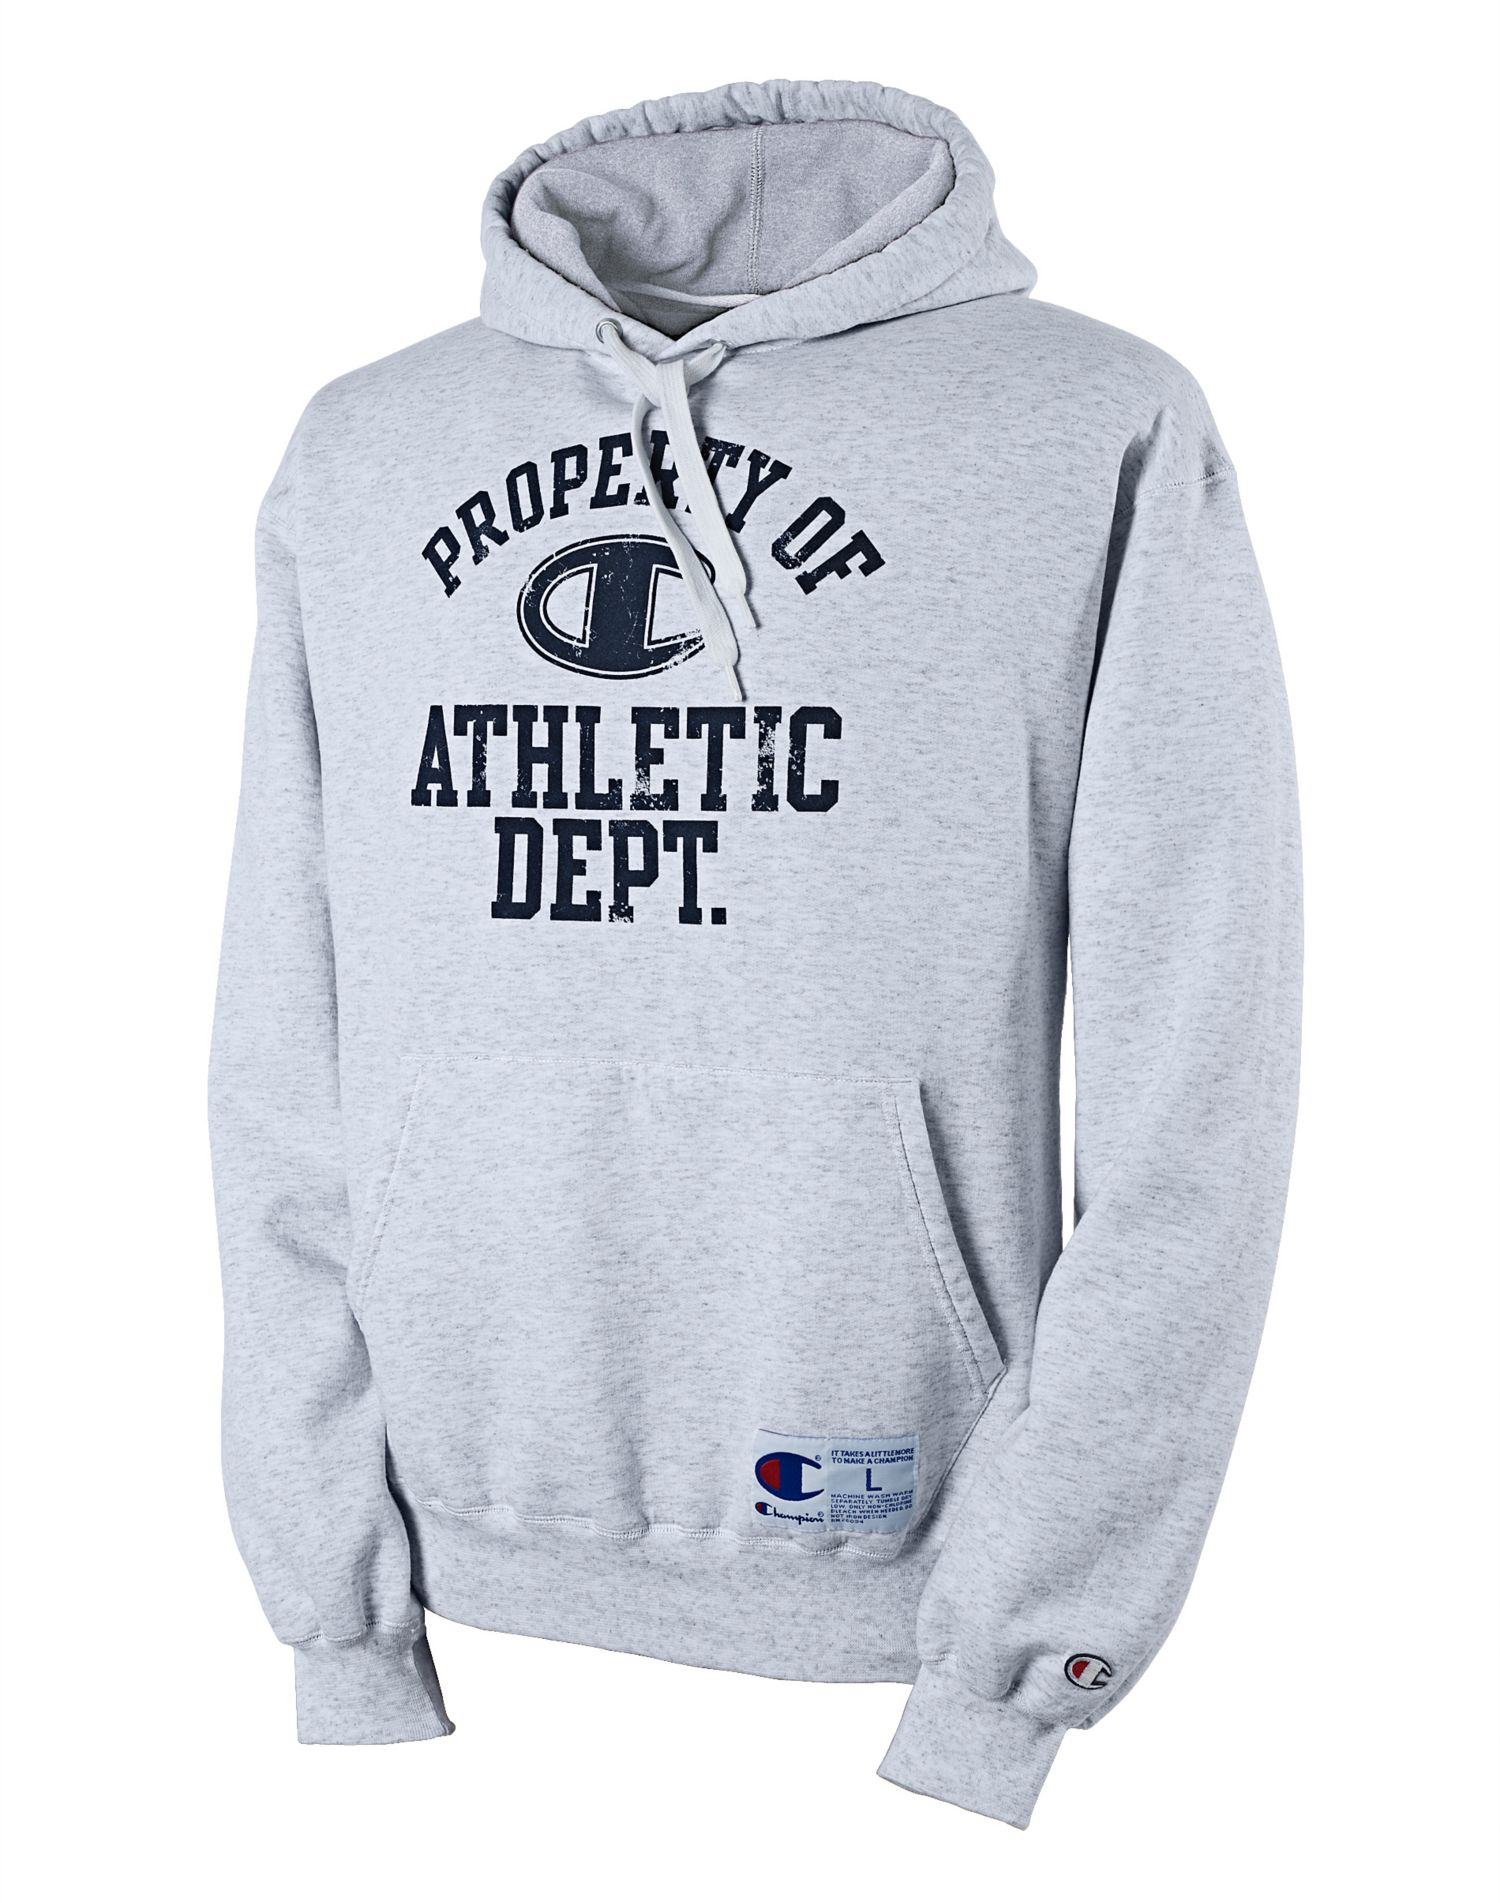 Retro Rugby Men's Hoodie with 'Property Of' Graphic